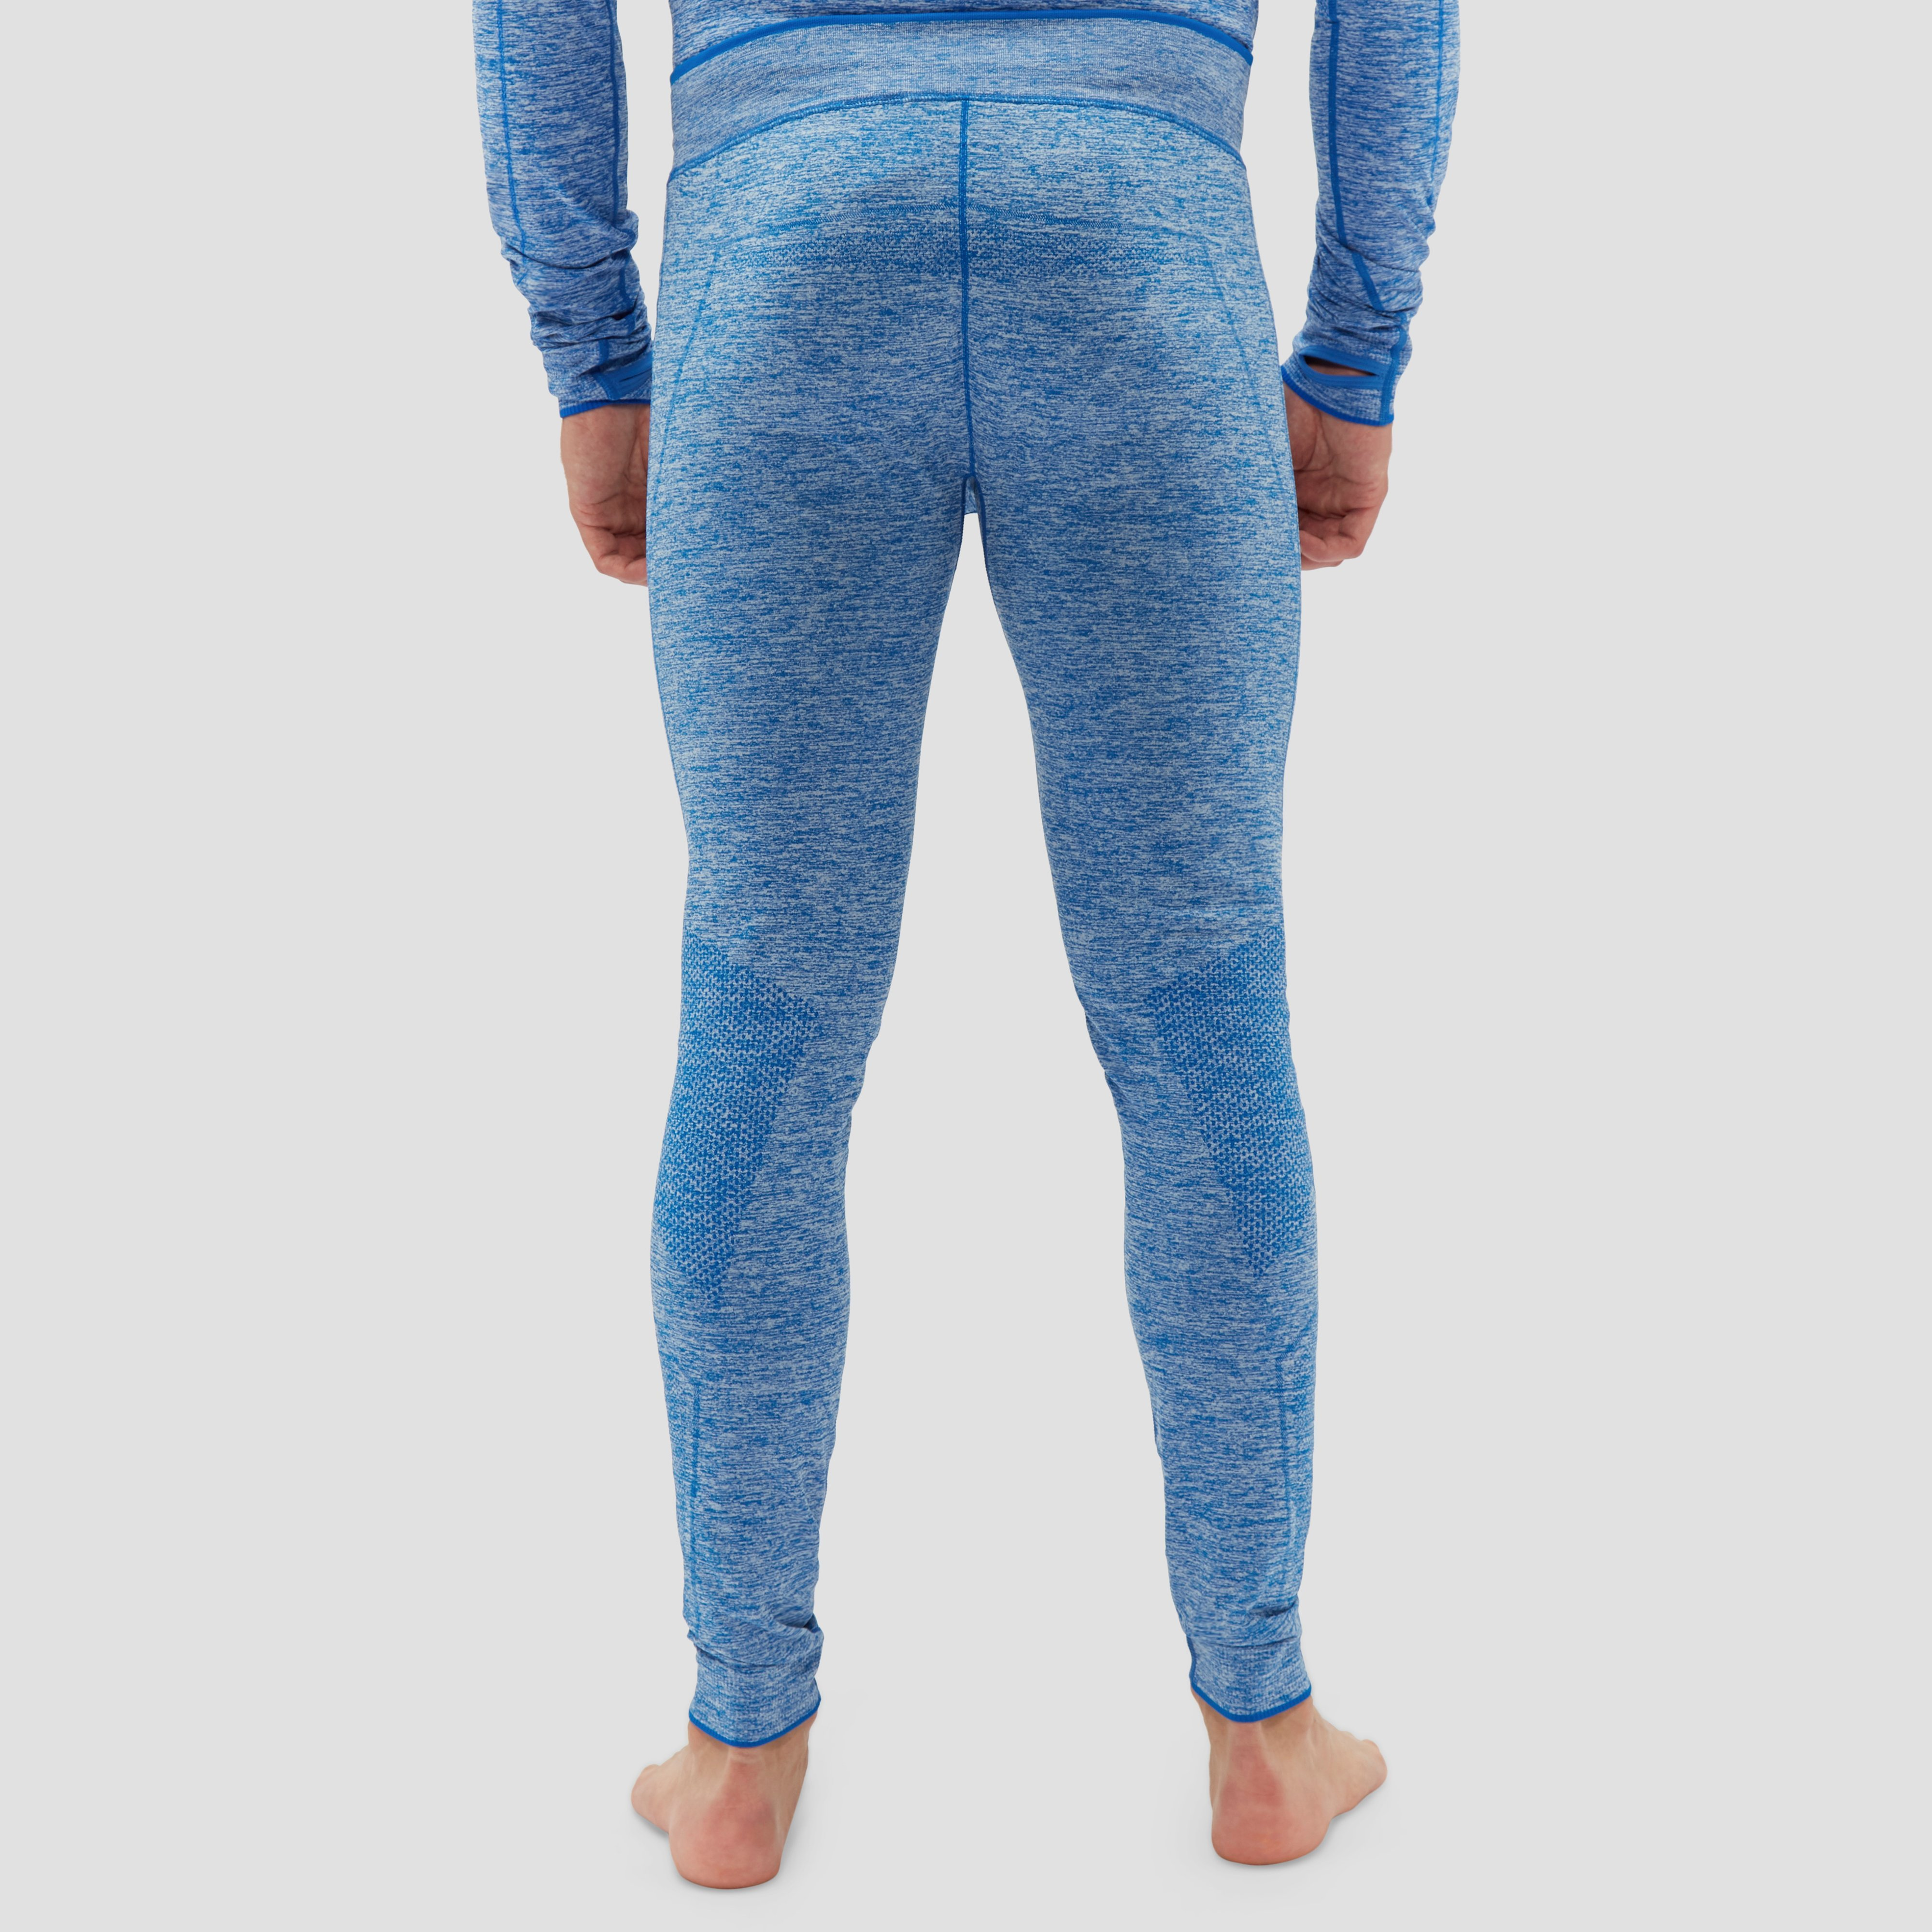 CRAFT ACTIVE COMFORT WINTER BROEK BLAUW HEREN